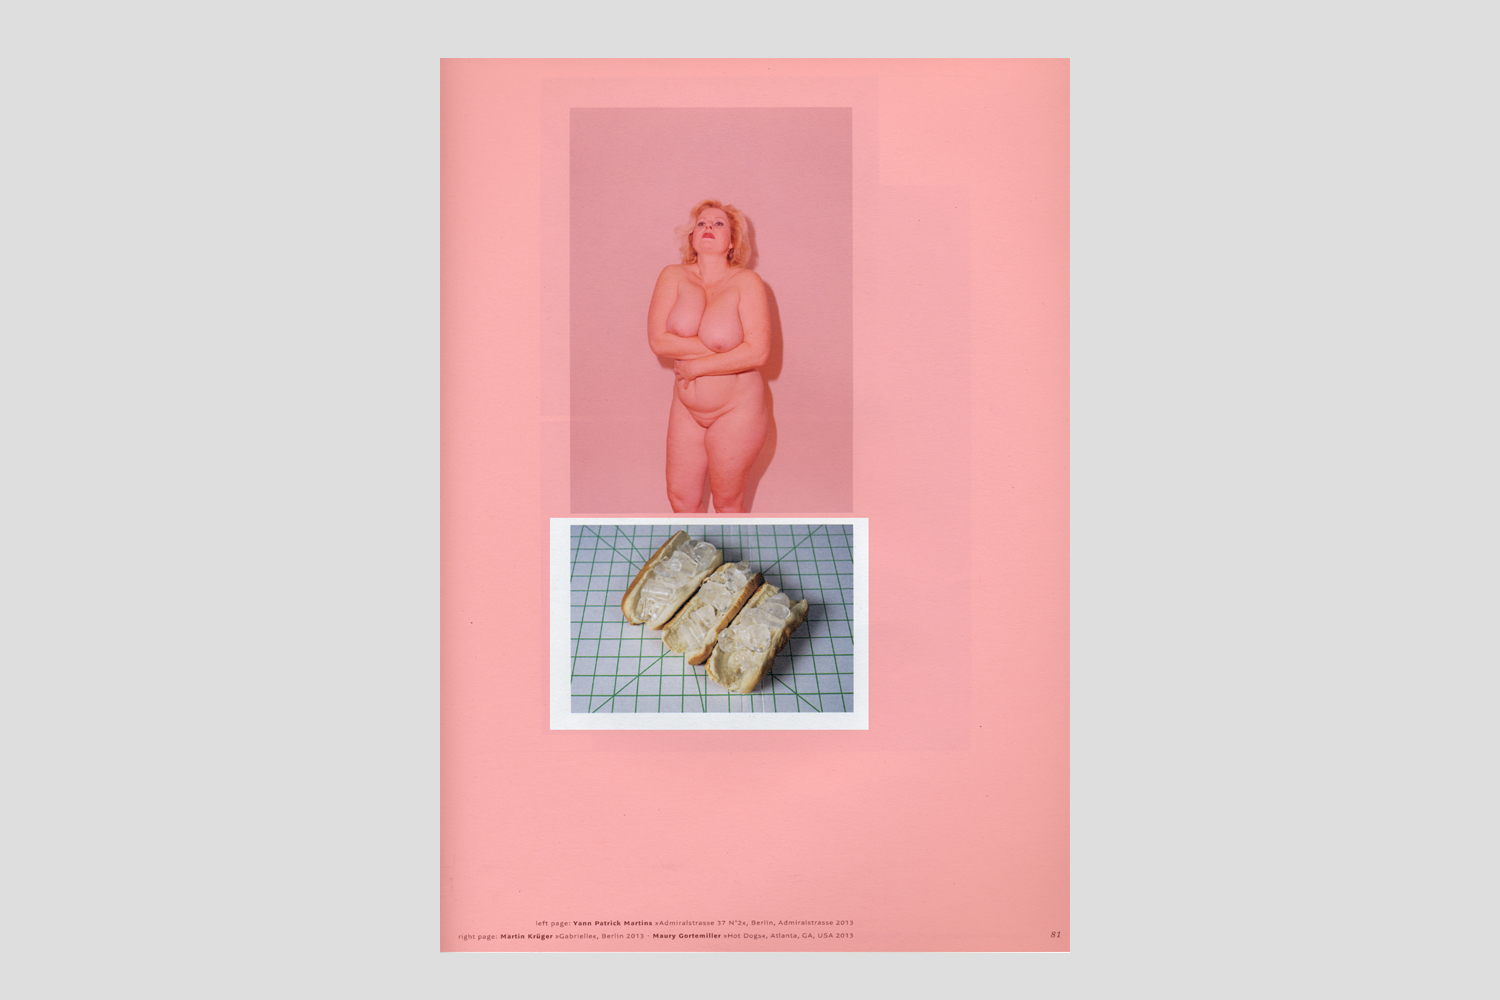 Der Greif, Issue 7, 2013